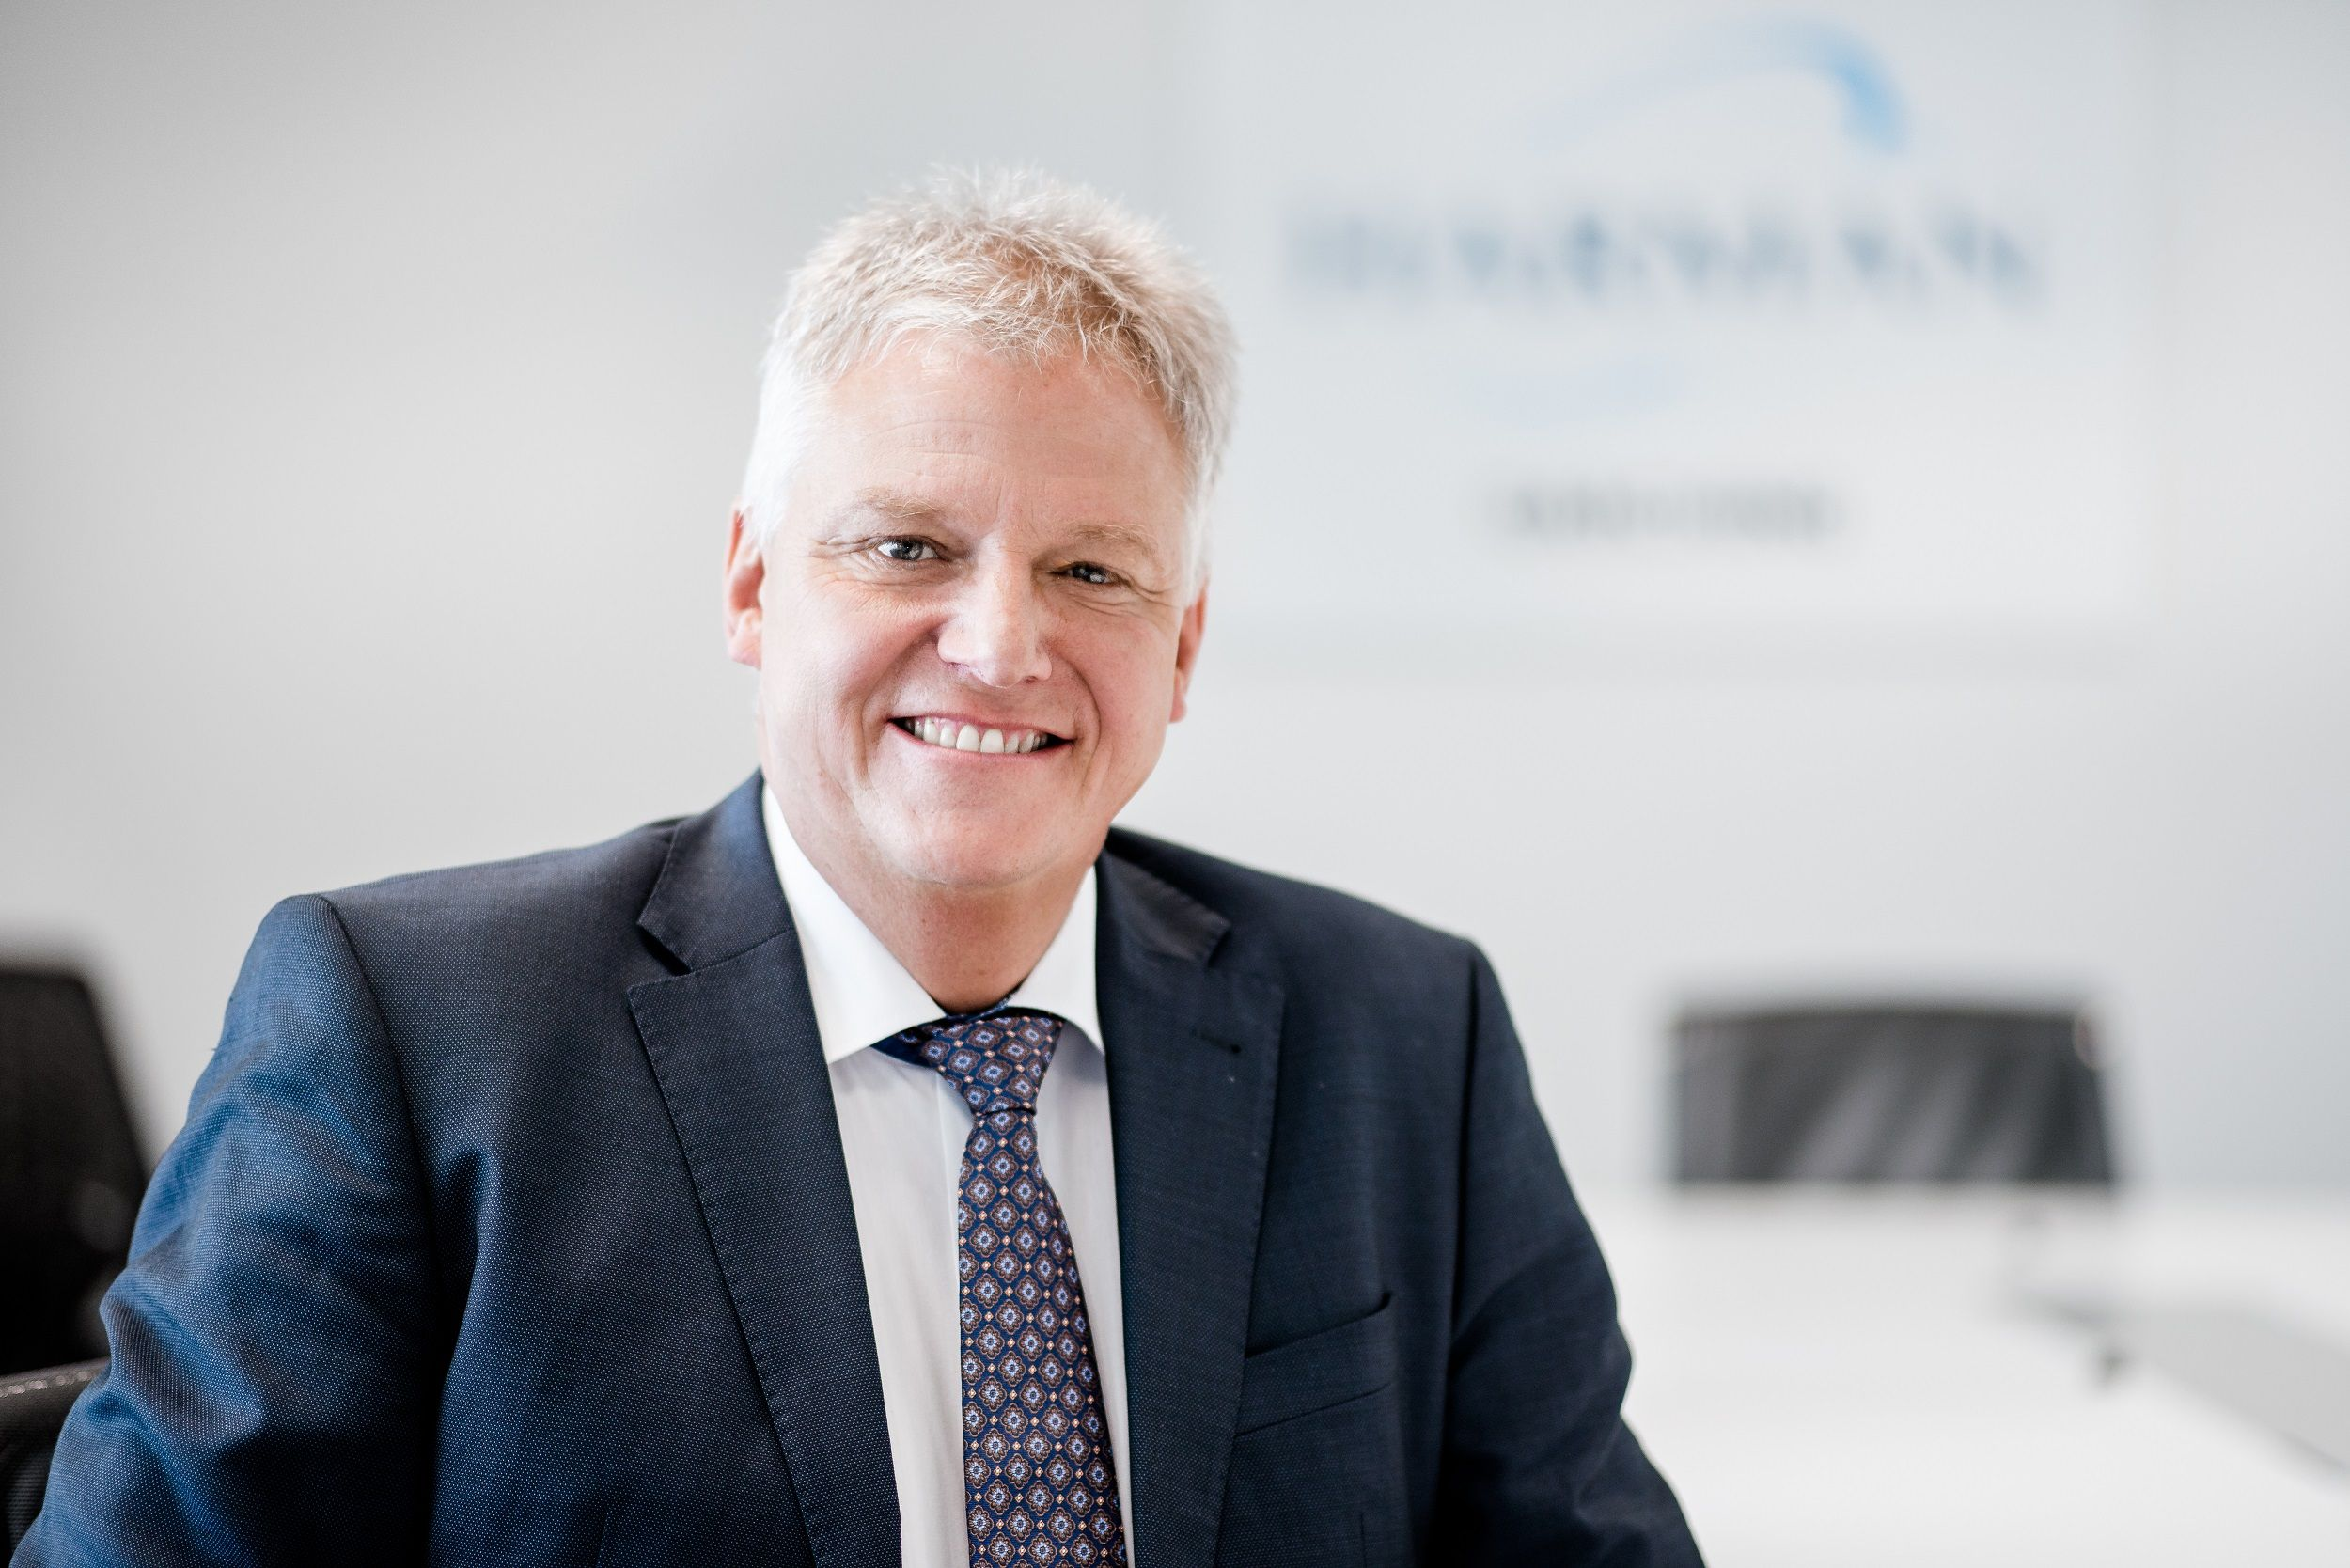 Michael Mauser, Executive Vice President and President of the Lifestyle Audio Division at HARMAN International